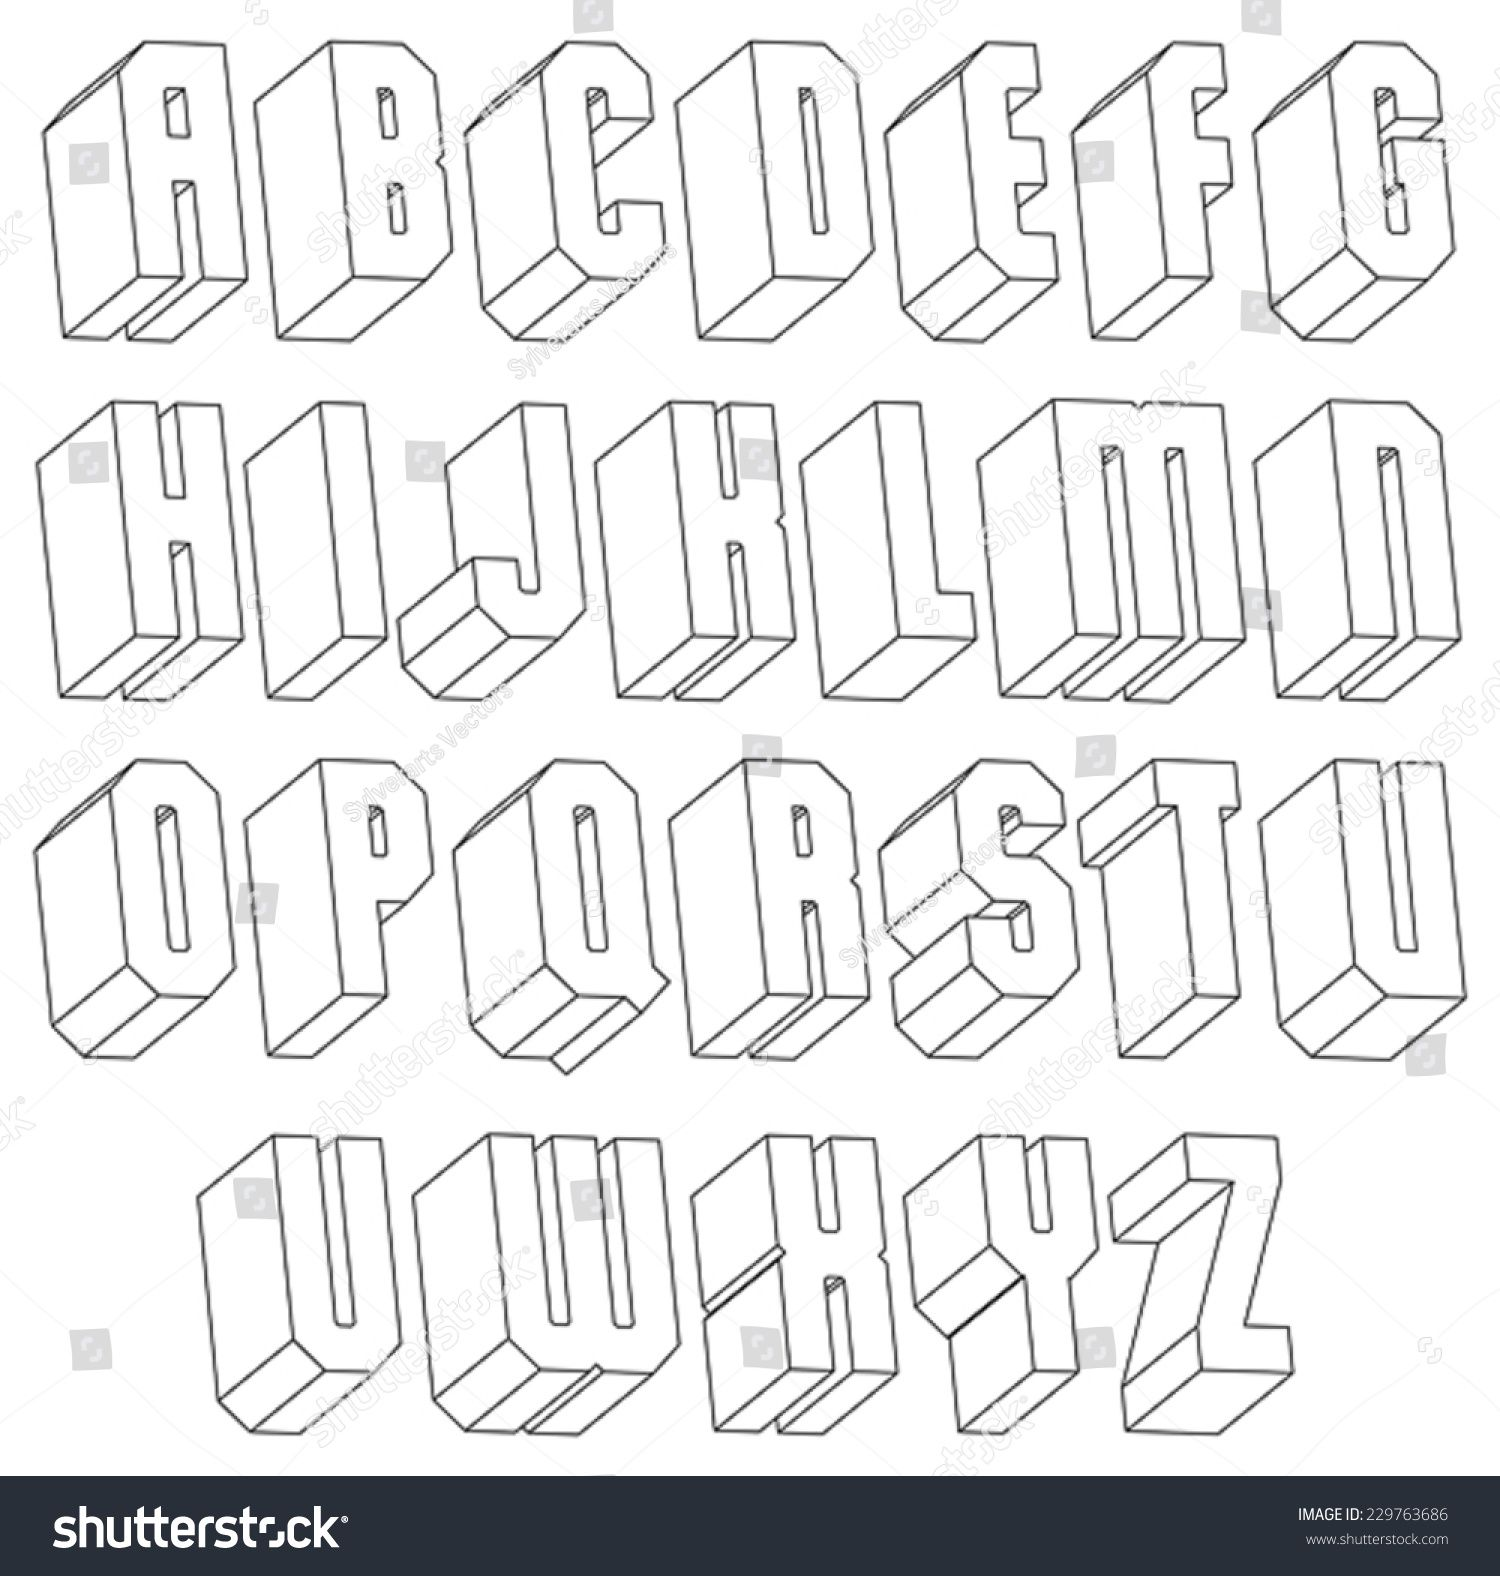 Geometric black and white 3d font made with thin lines